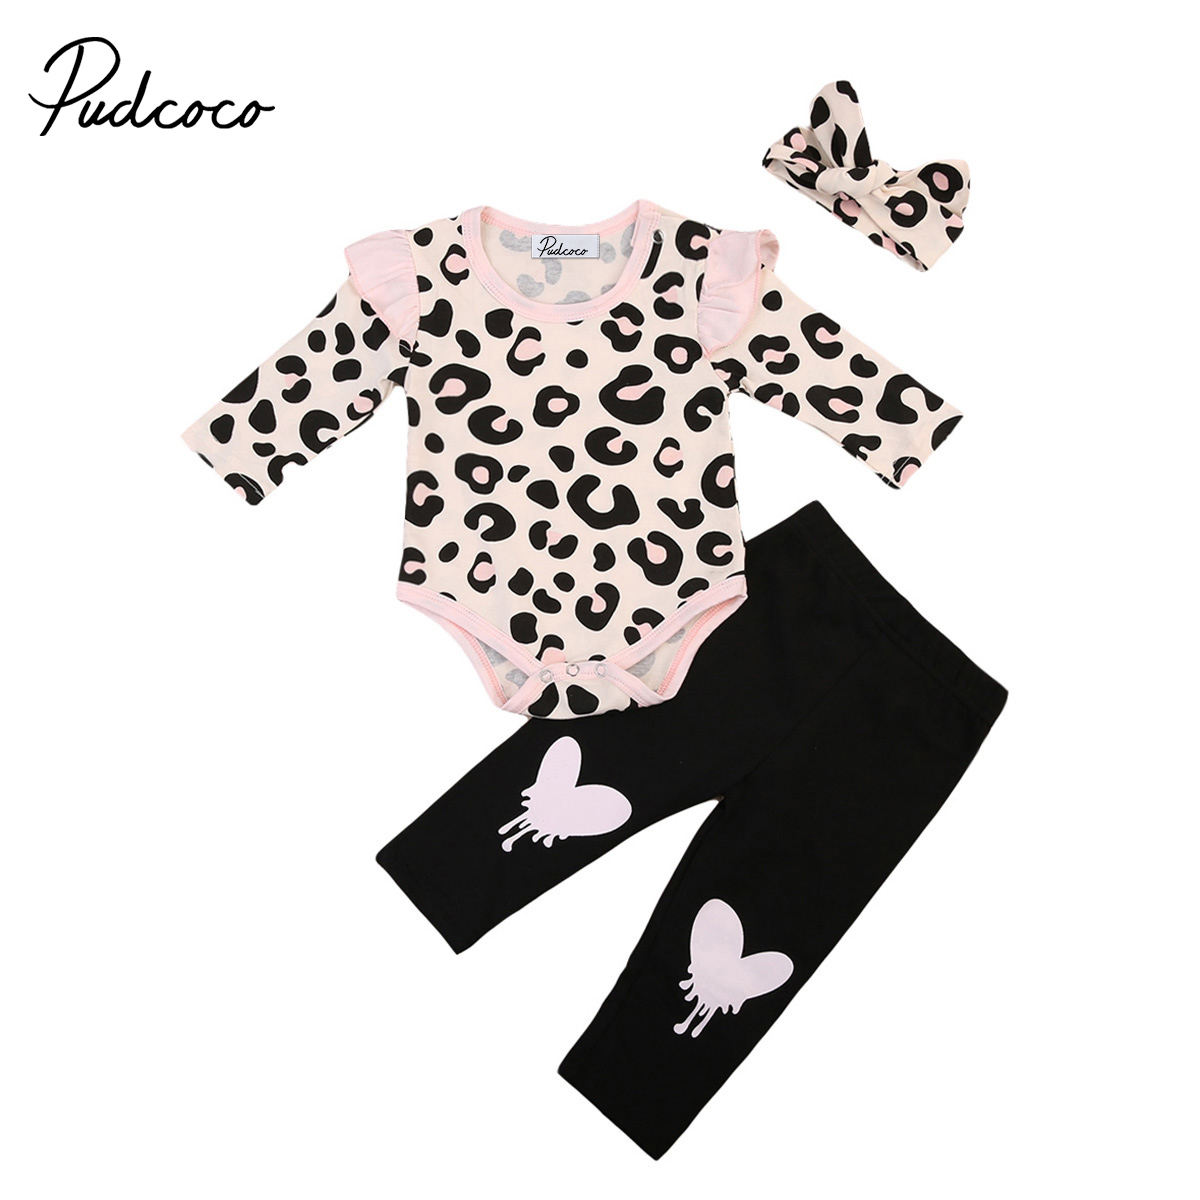 3pcs Baby Girl Clothes Set Infant Cotton Casual Long Sleeve Leopard Top T Shirt Romper Pants Outfits Party headband casual romper jumpsuit baby girl clothes gold polka dot cotton sleeveless outfits set baby girl 3 6 9 12 18 24 monthes